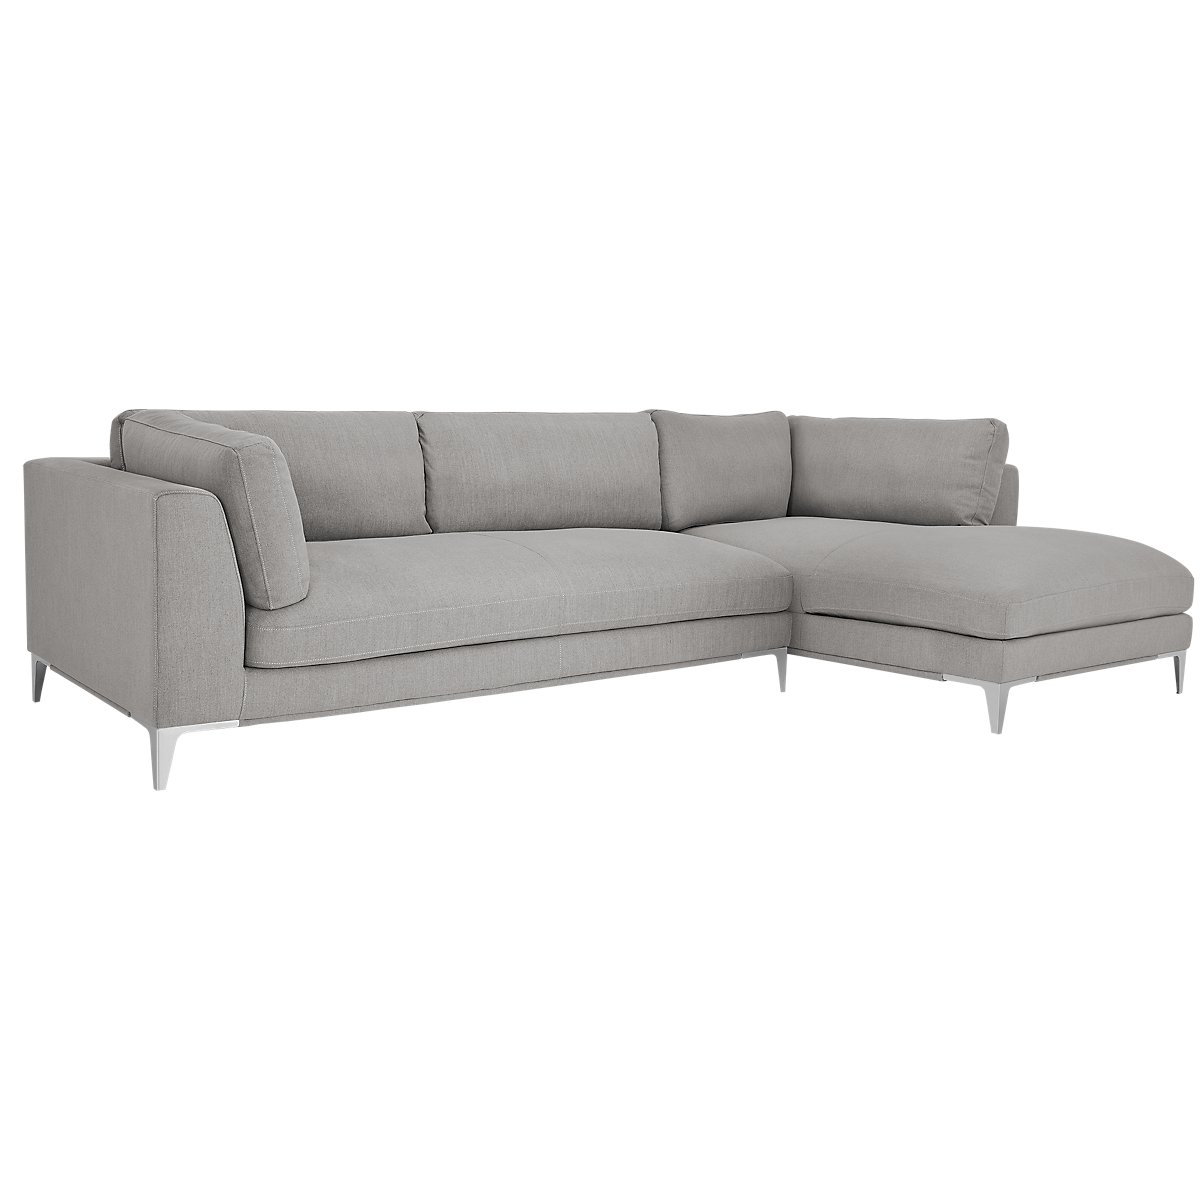 shipping gray sofa sectional home today free modern overstock product lungo garden r fabric dark